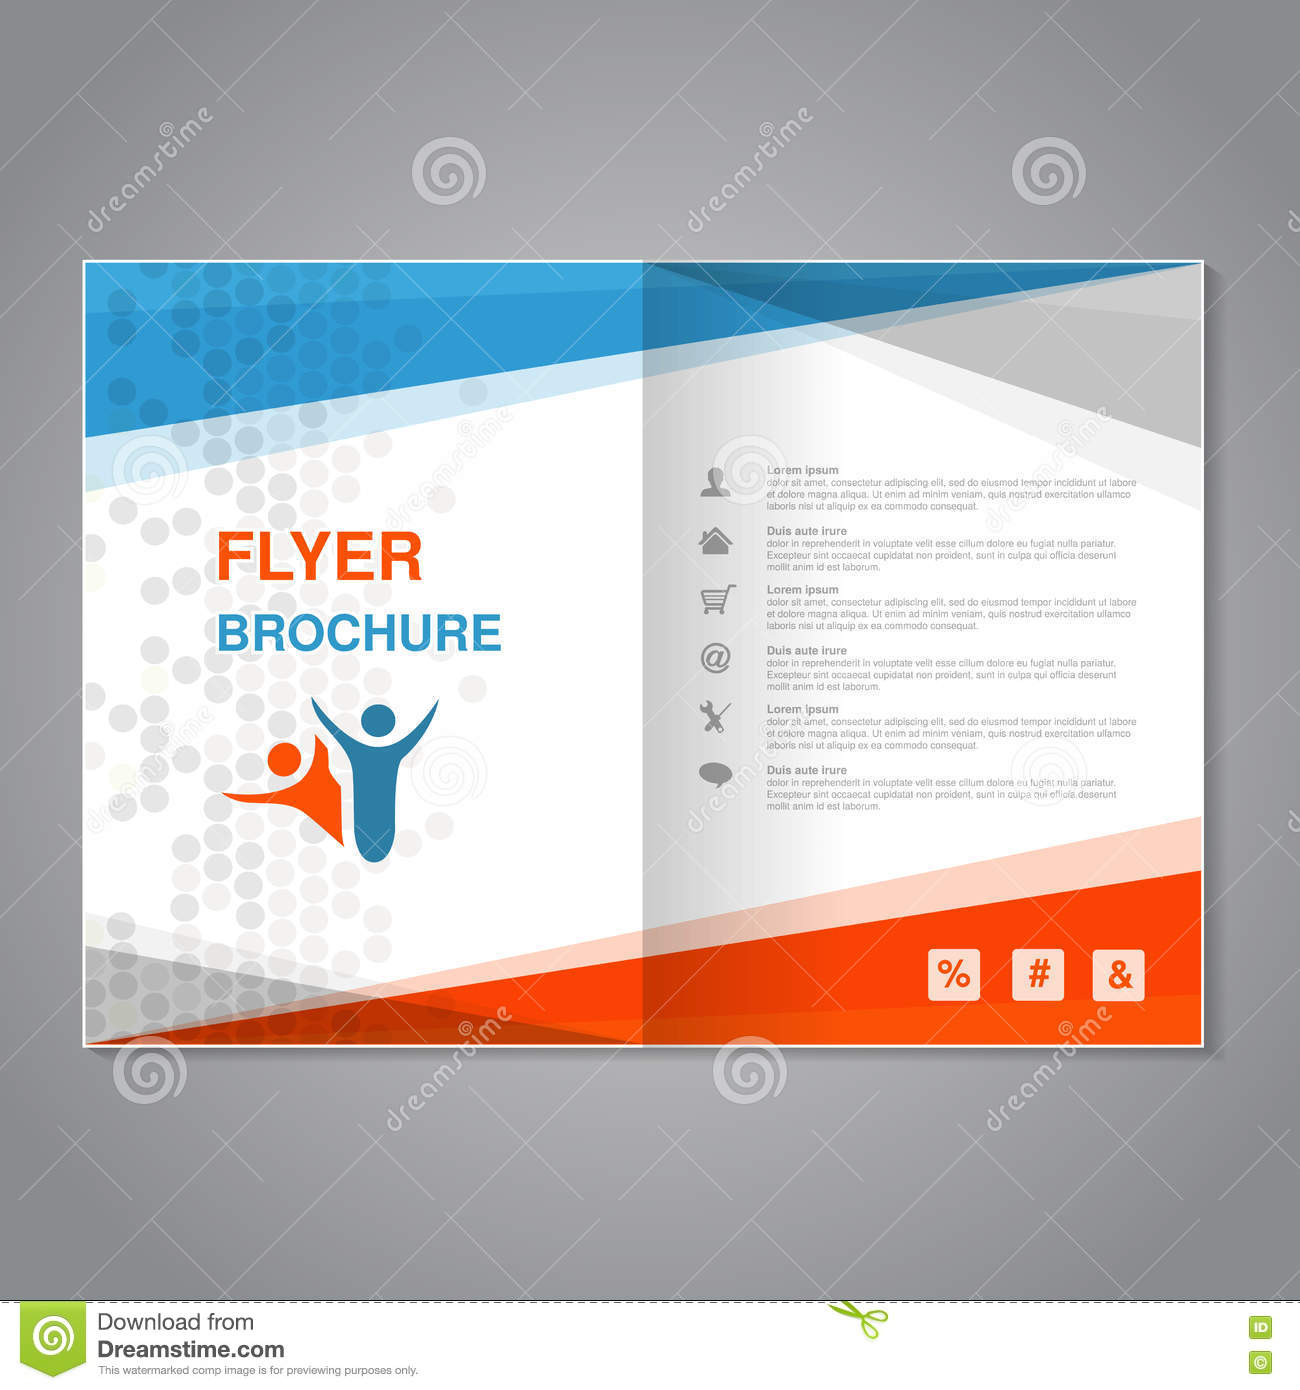 Poster design size - Modern Brochure Abstract Flyer With Simple Dotted Design Aspect Ratio For A4 Size Poster Of Blue Grey White And Orange Color